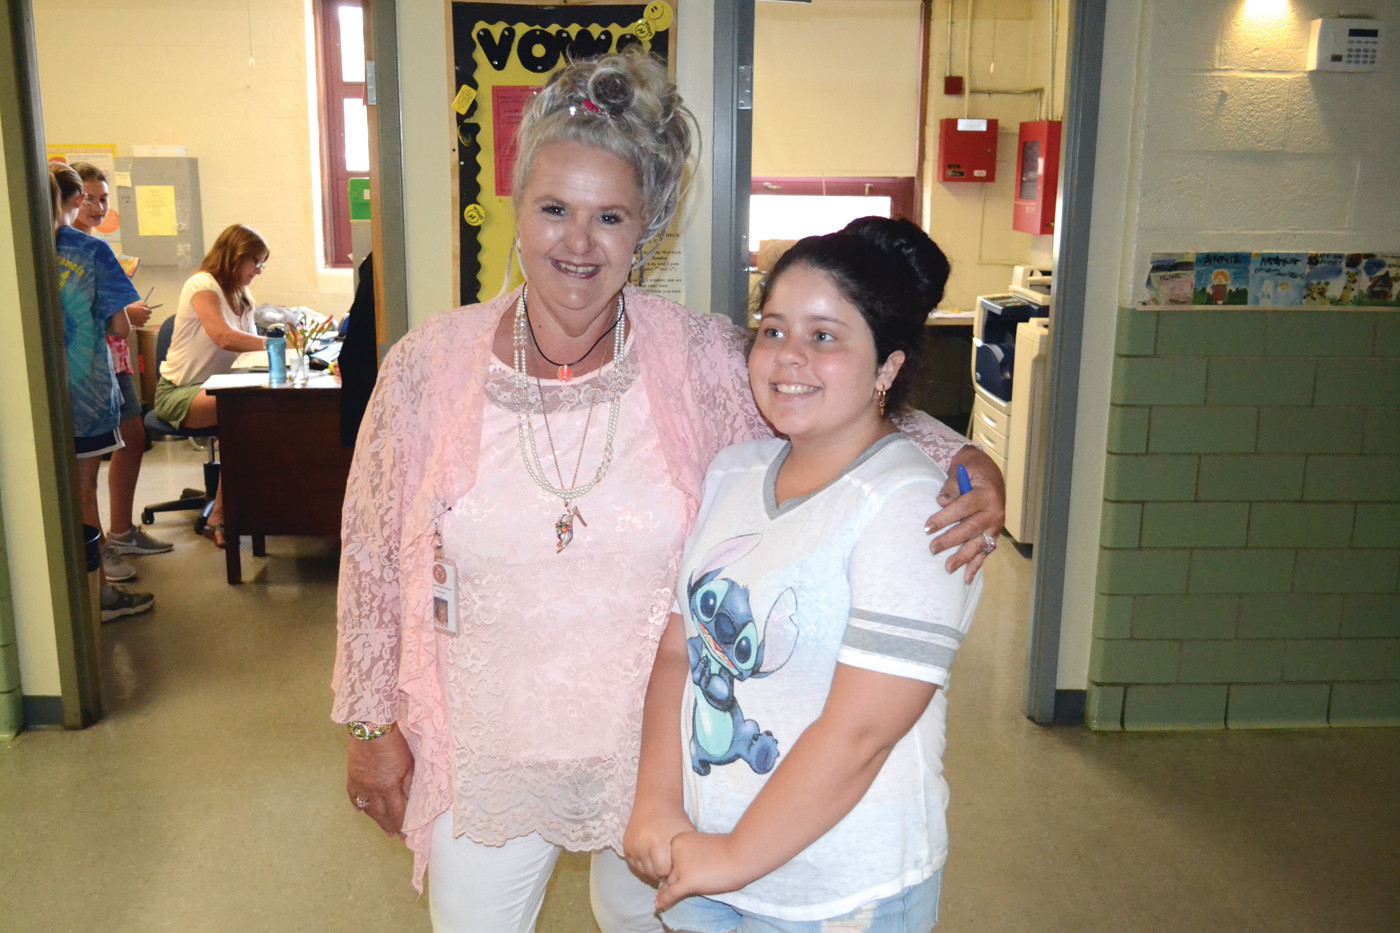 FAREWELL TO FRIENDS: Debra Norman, school secretary of nearly 30 years, and student Sabrina Torres shared an embrace on John Brown Francis's final day.